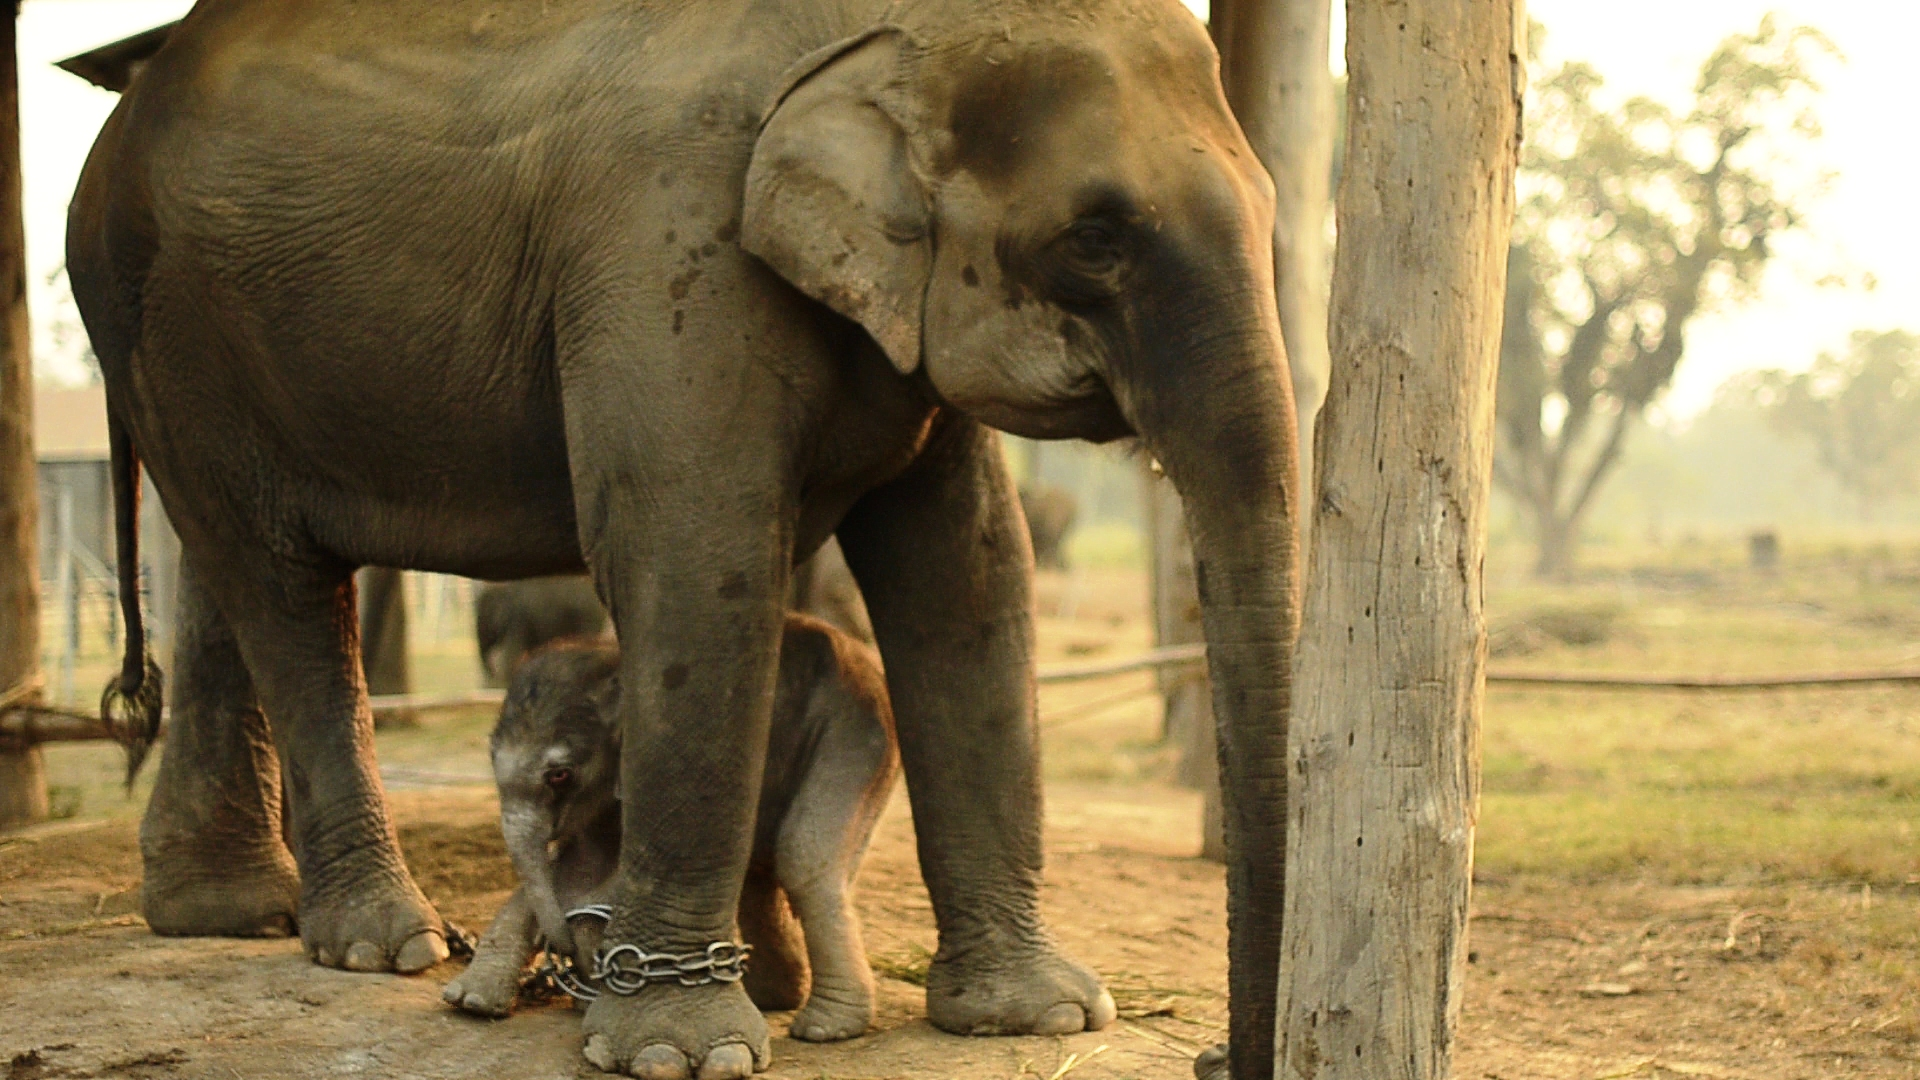 Unchained - One day old baby elephant, trying to take the chains off her Mother. Breeding Center, Sauraha, Nepal. Still by Leticia Ruiz